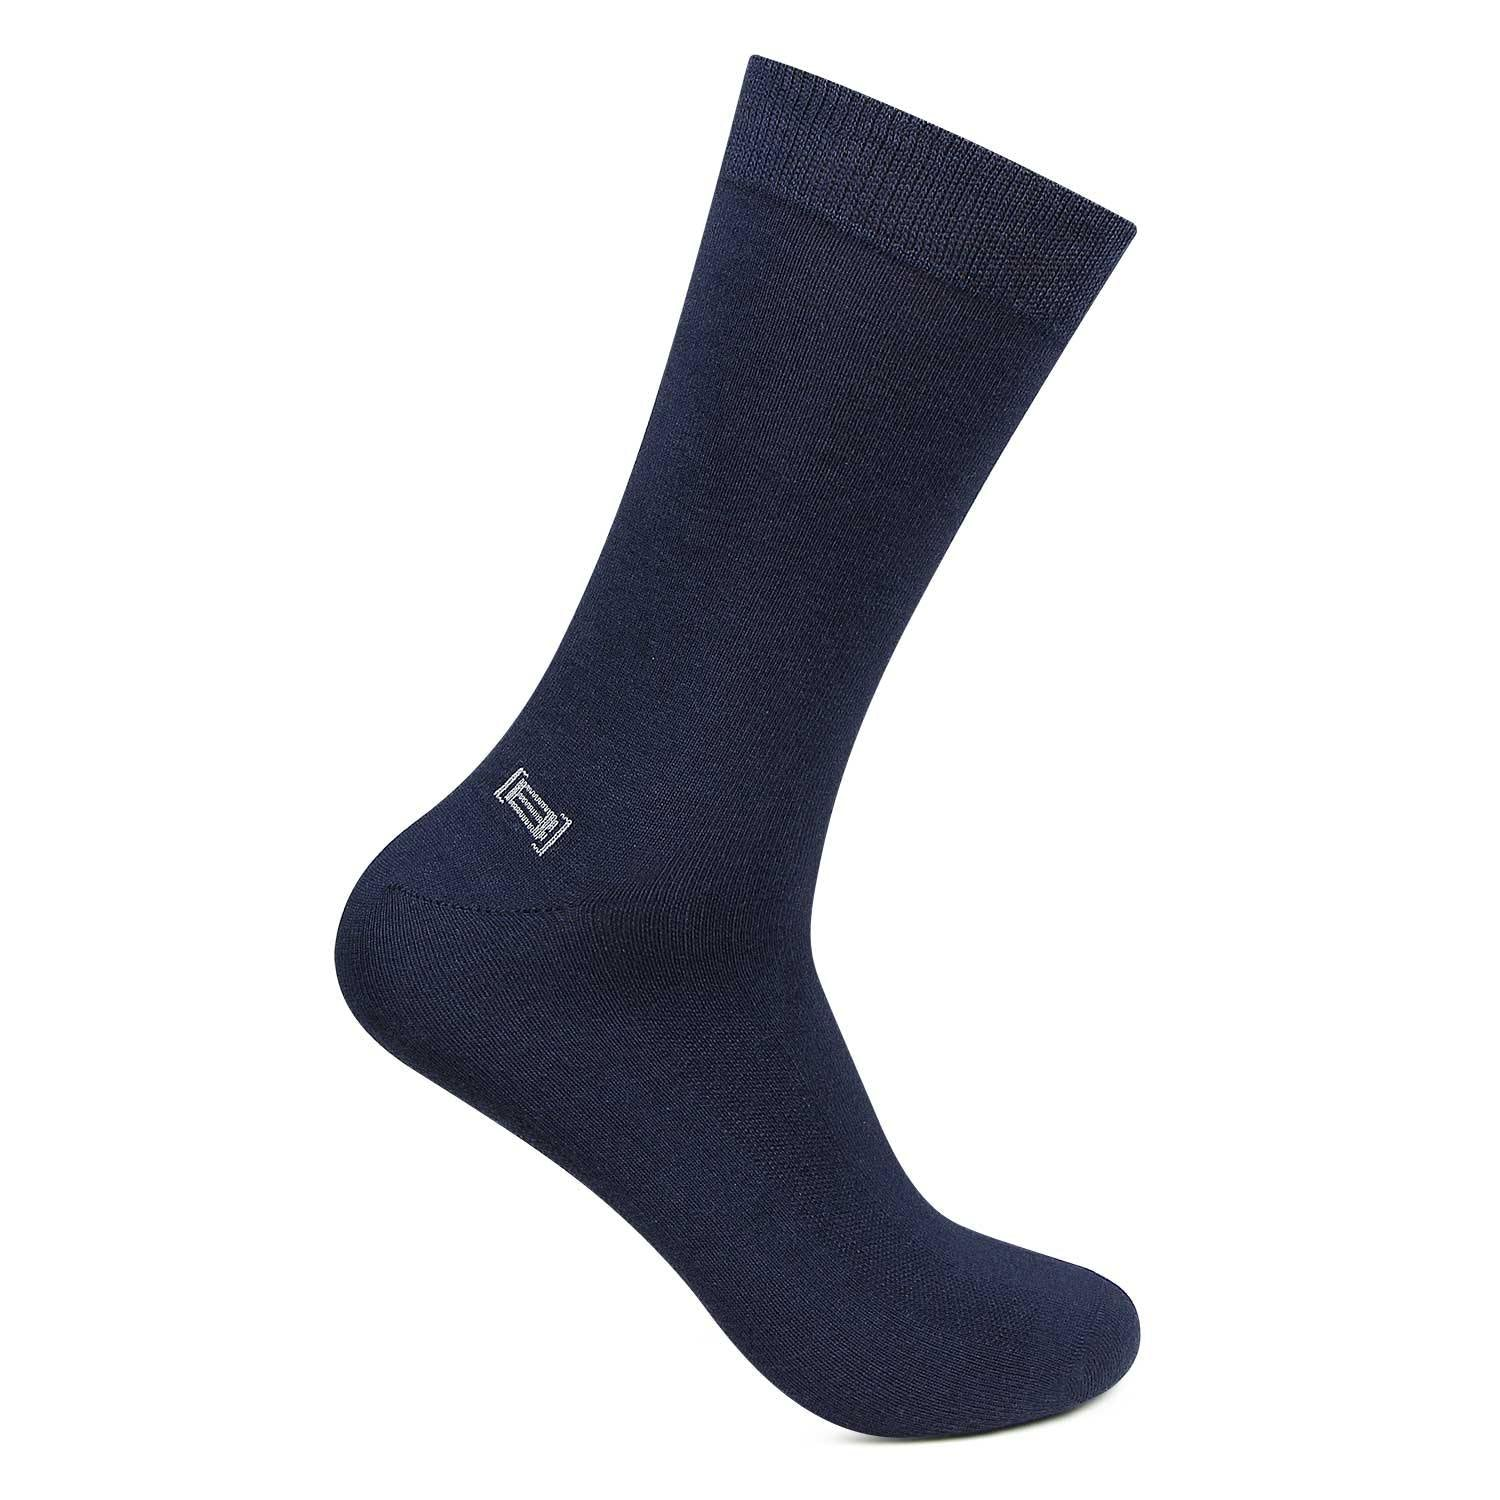 Men's Health socks (Navy Blue) - Bonjour Group